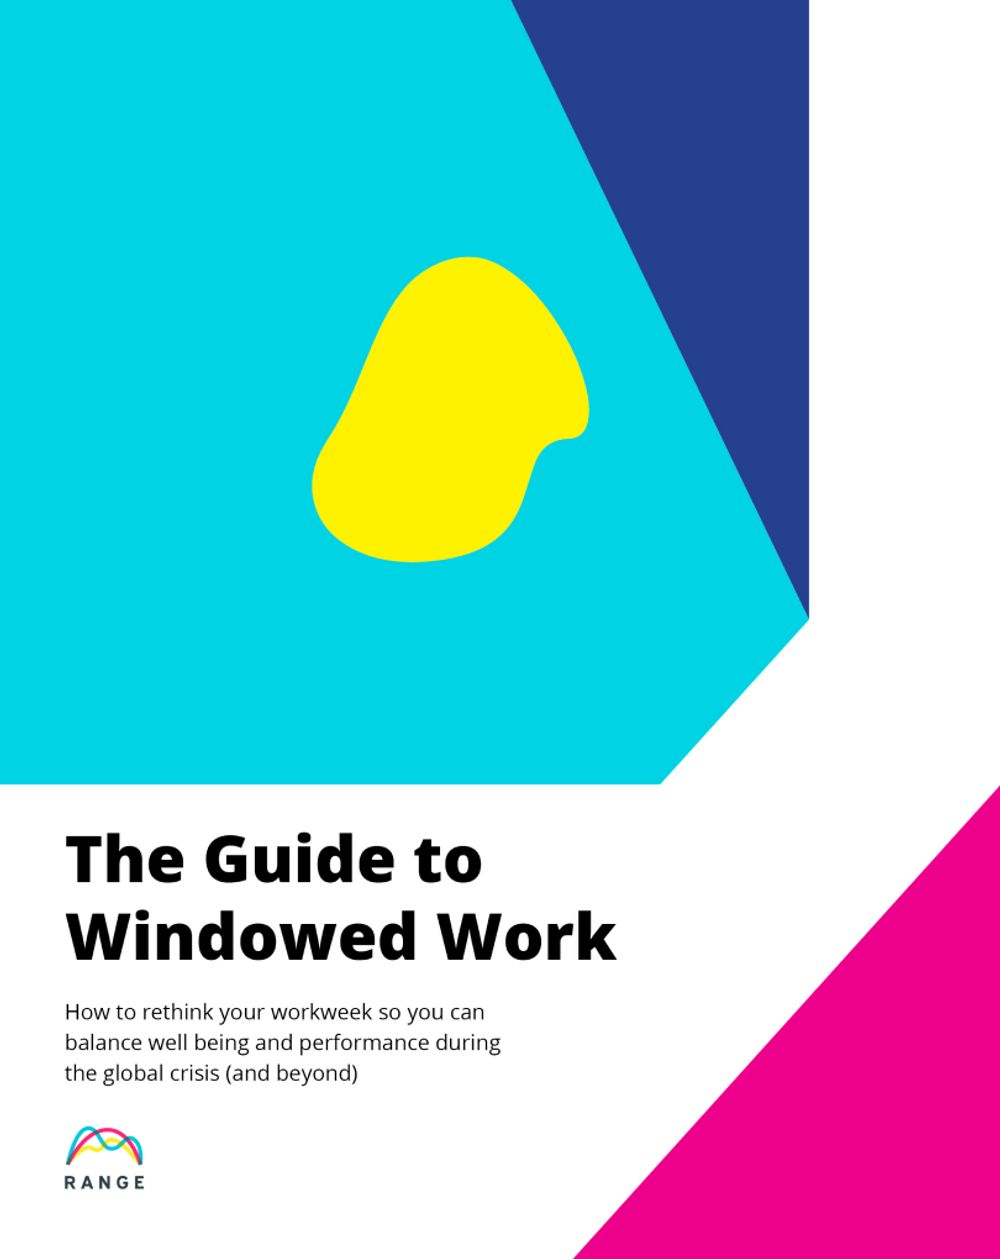 Download The Guide to Windowed Work